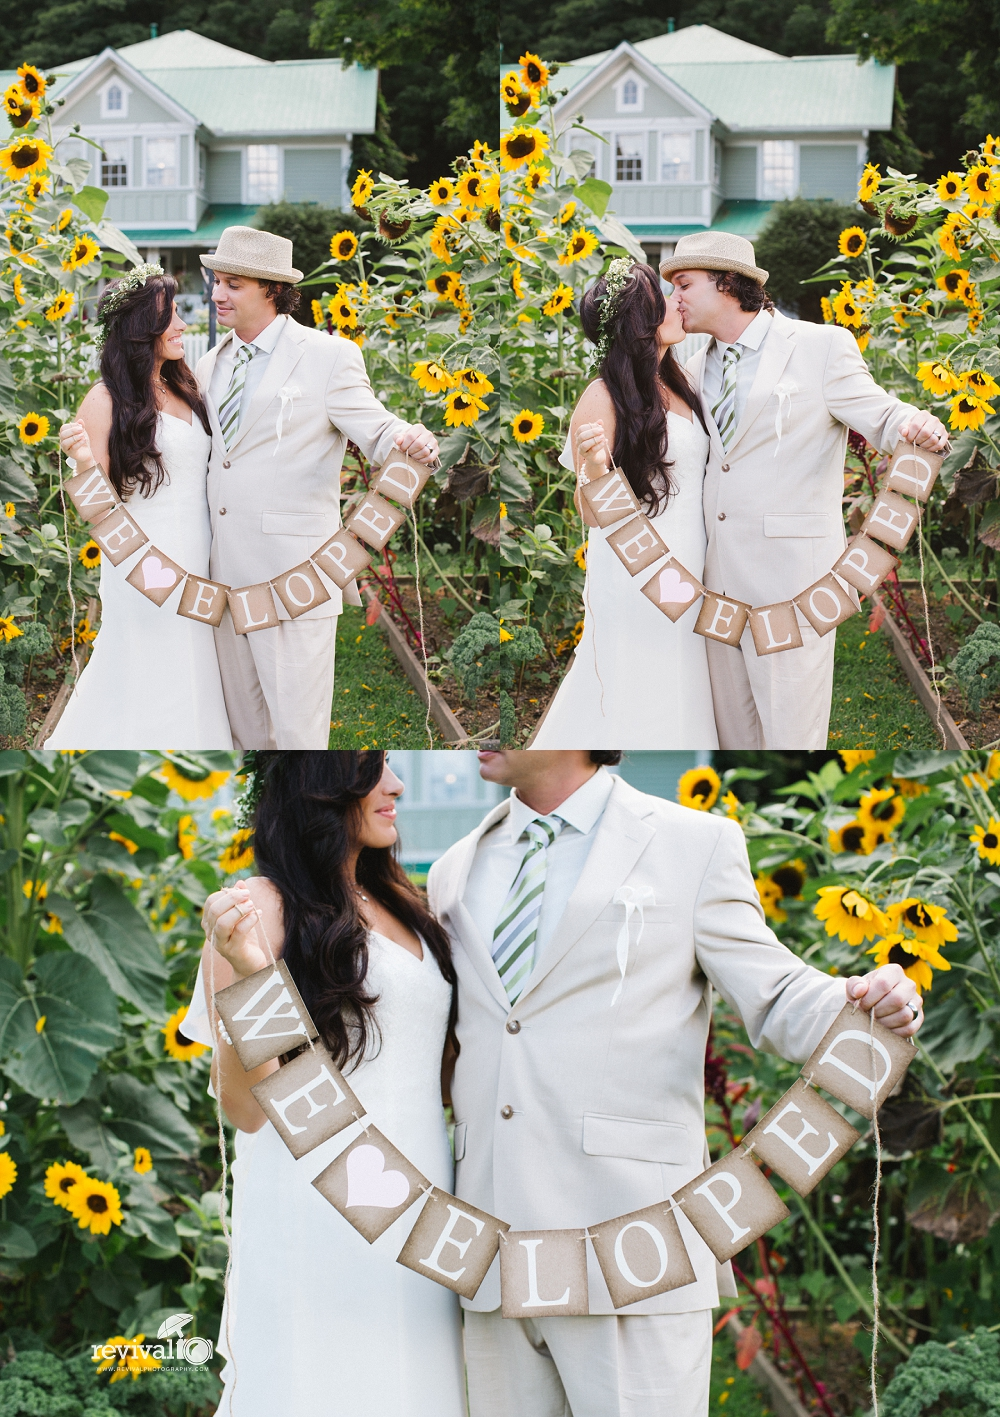 Photos by Revival Photography Mountain Destination Elopement at The Mast Farm Inn Valle Crucis NC Elopement Packages NC Elopement Photographer www.revivalphotography.com